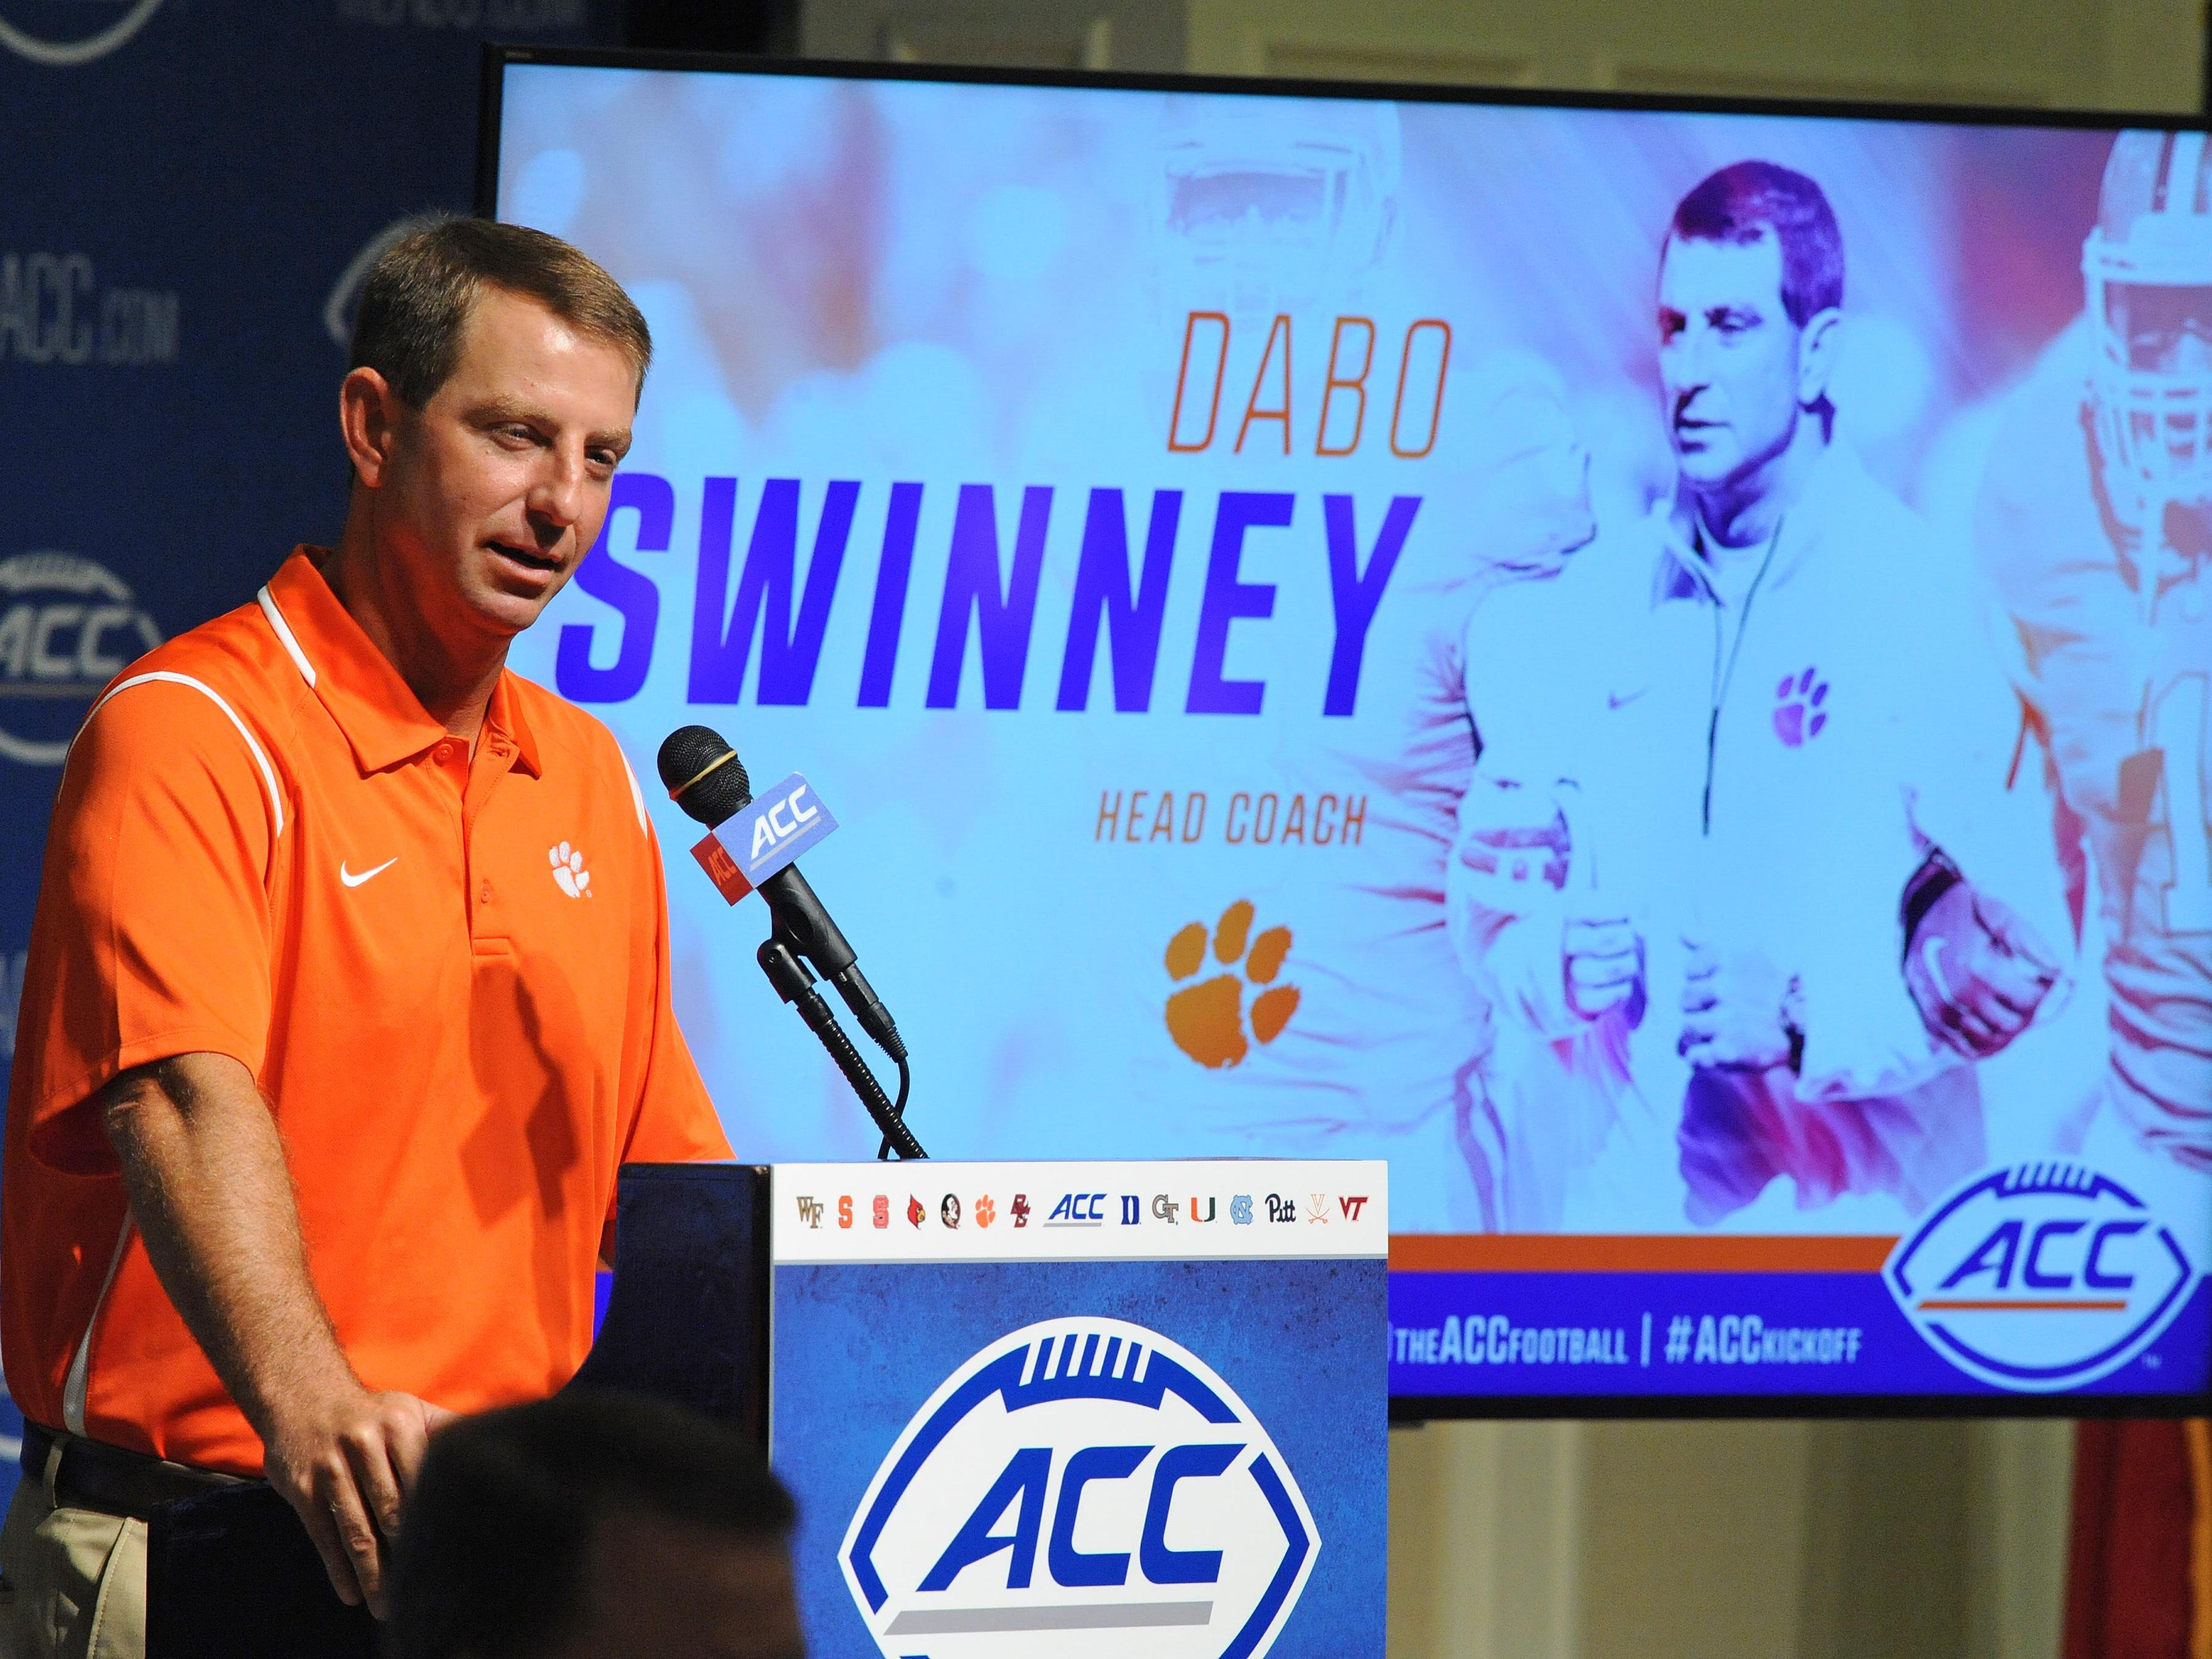 Clemson head coach Dabo Swinney answers questions during the ACC Football Kickoff Tuesday, July 21, 2015 in Pinehurst, N.C.